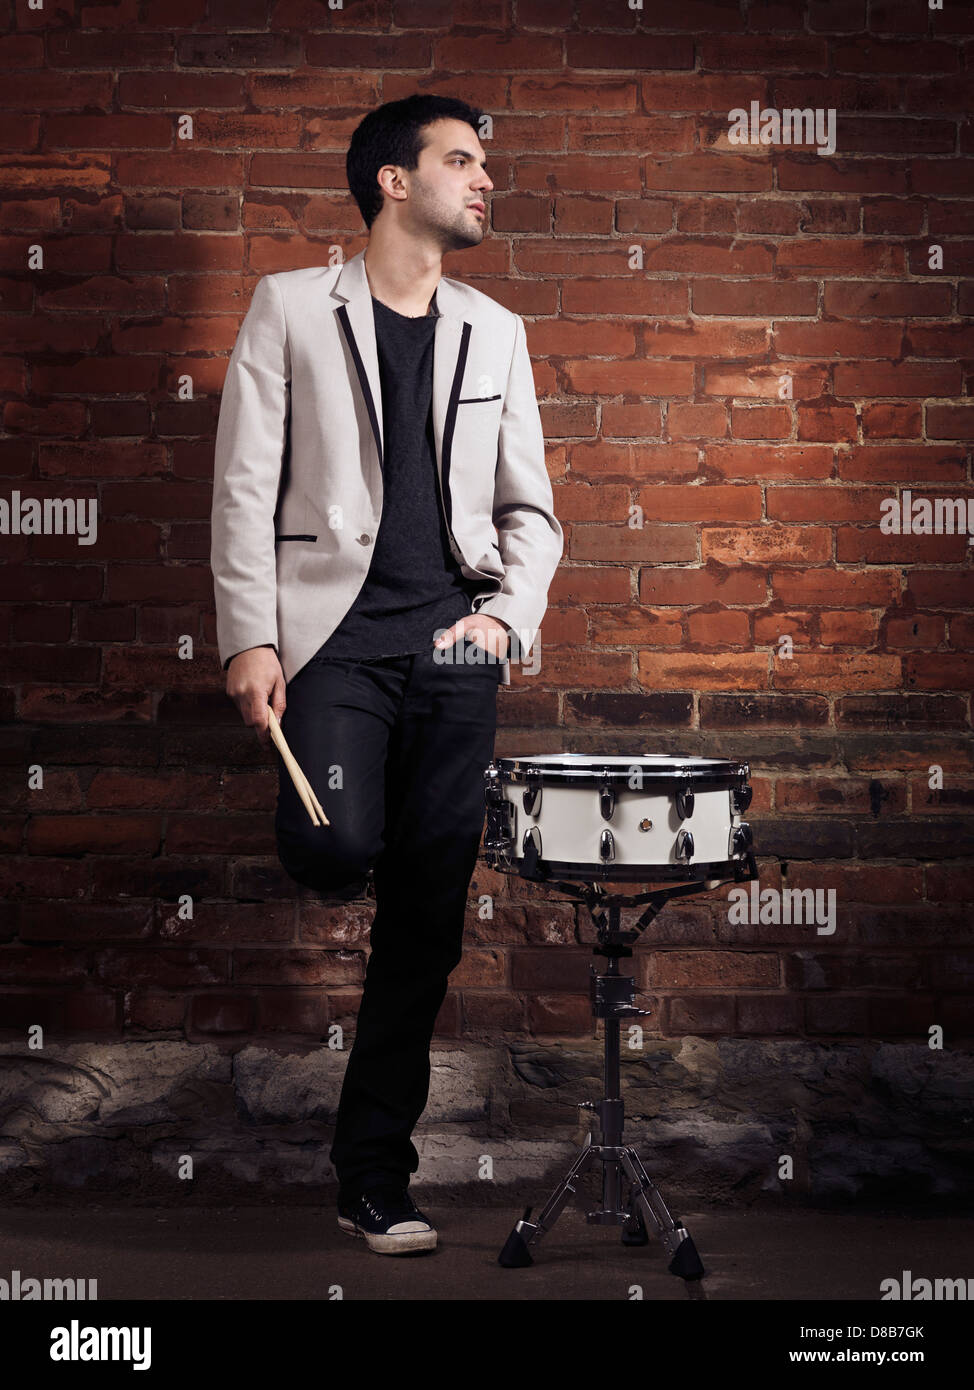 Dramatic portrait of a young man drummer with a snare drum and drumsticks standing at a brick wall - Stock Image